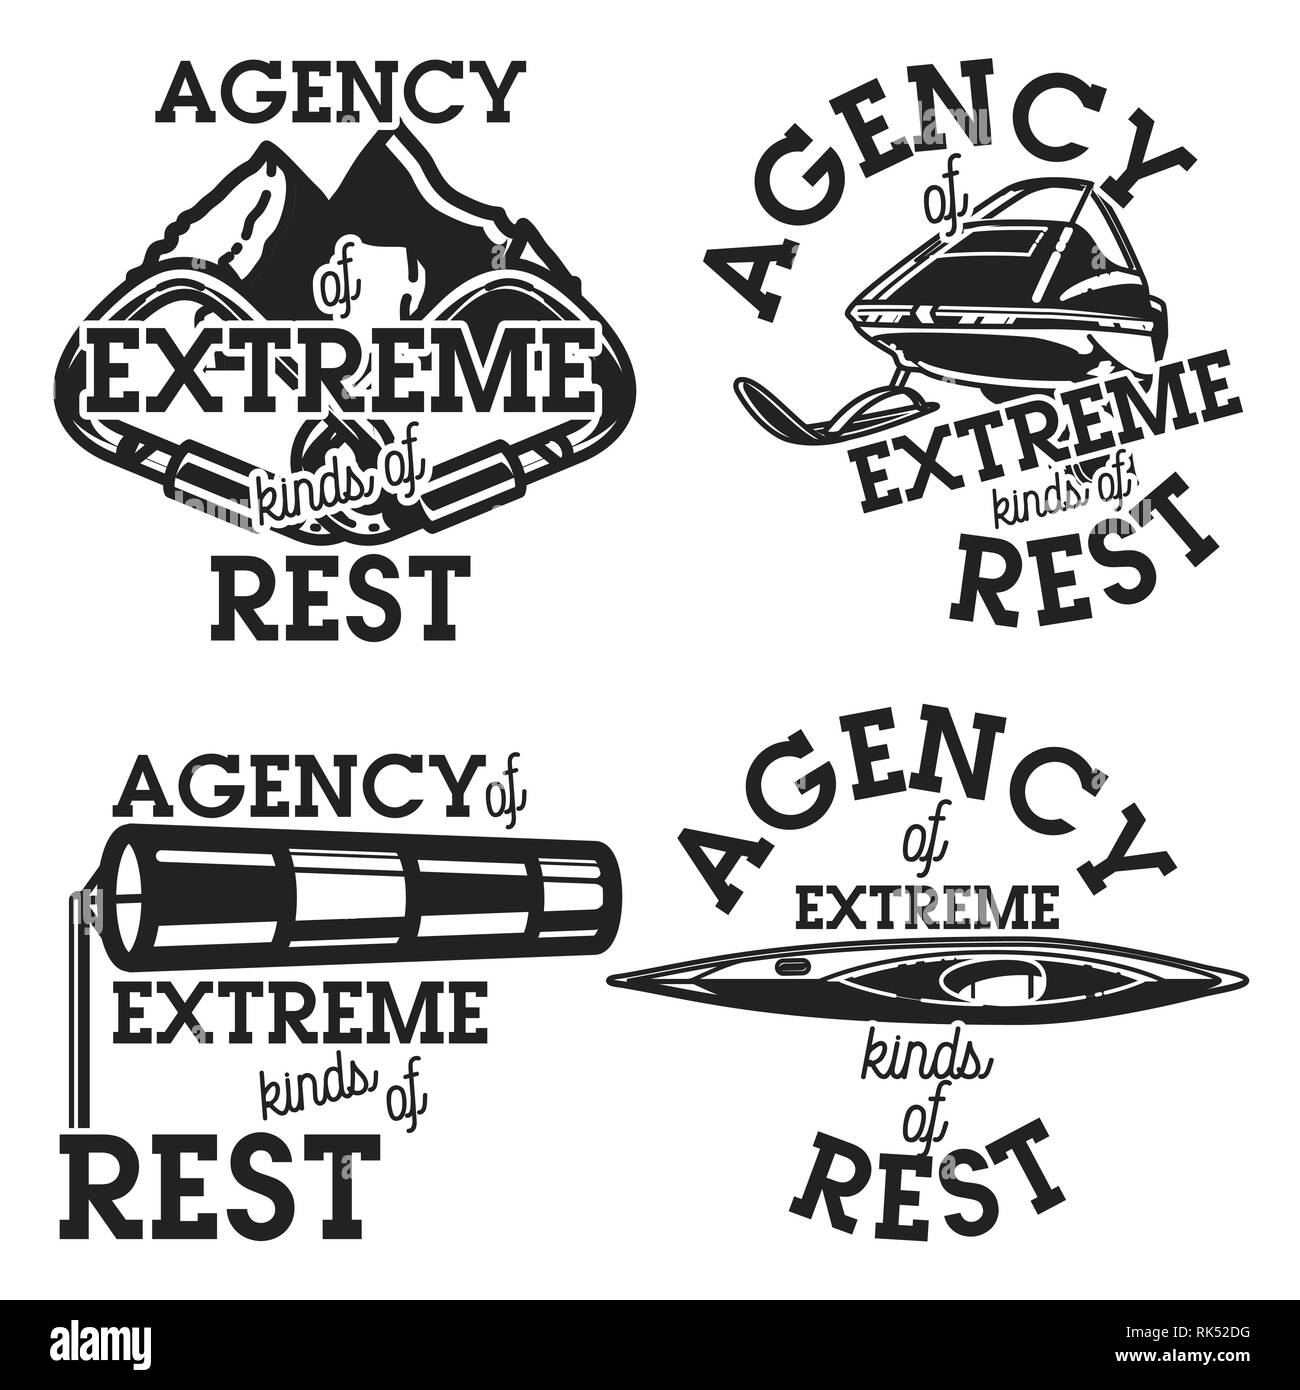 Vintage agency of extreme kinds of rest emblems, labels